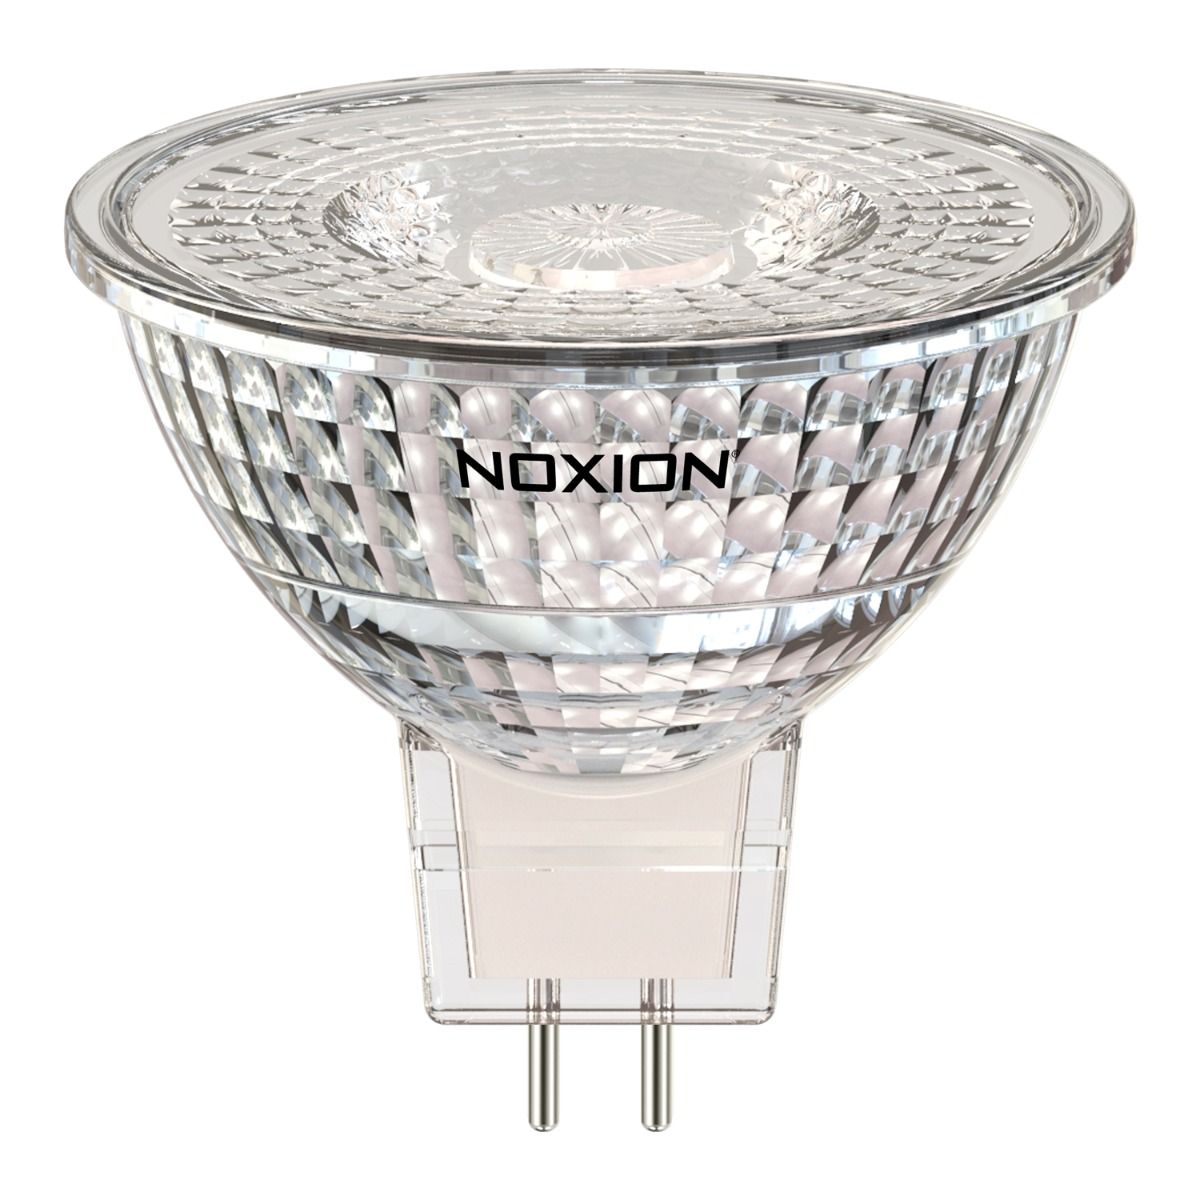 Noxion LED Spot GU5.3 5W 840 36D 490lm | Dimmable - Replacer for 35W